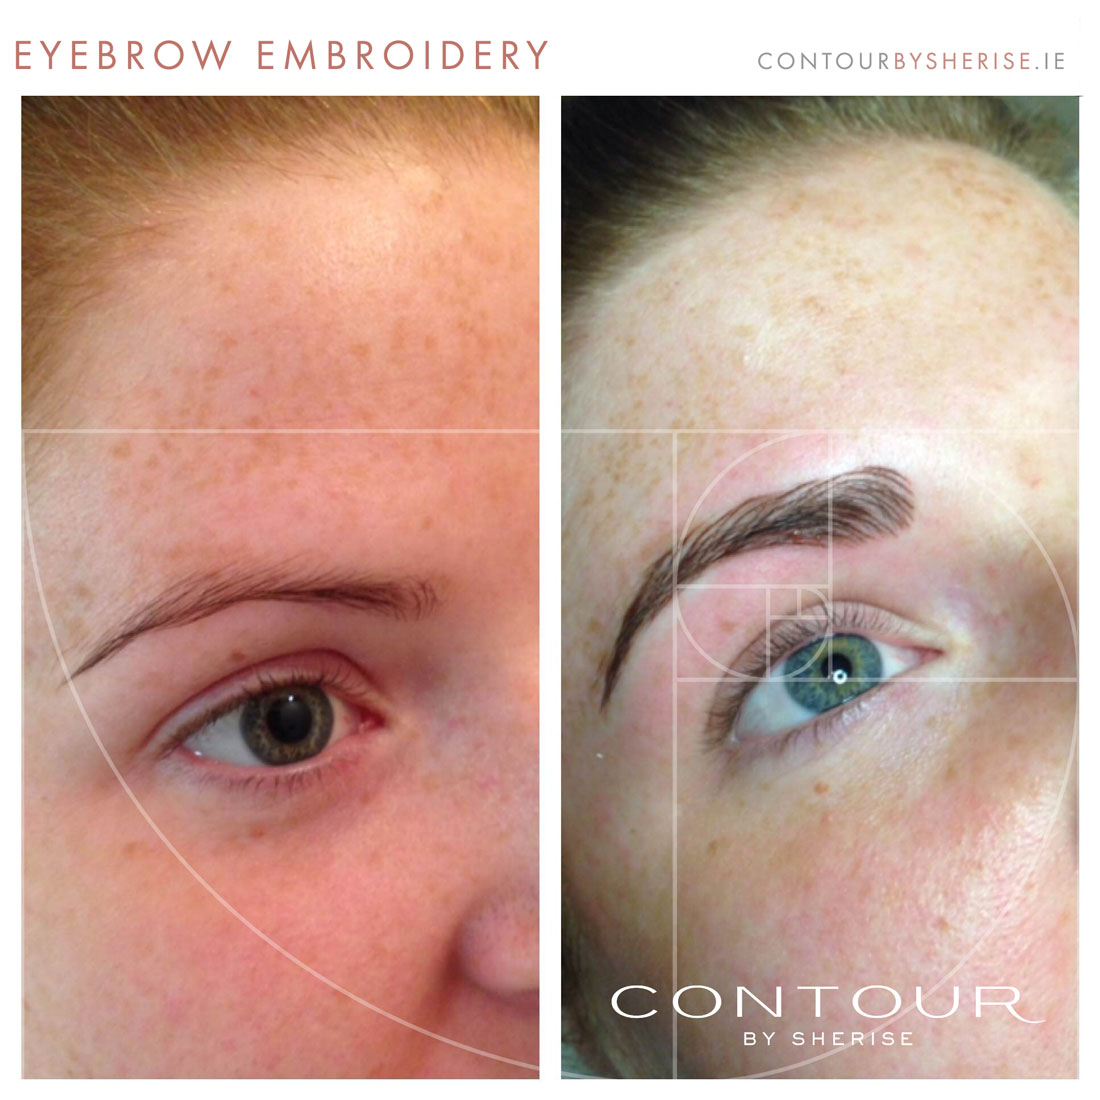 Brow artistry archives contour by sherise for 1 salon eyebrow embroidery